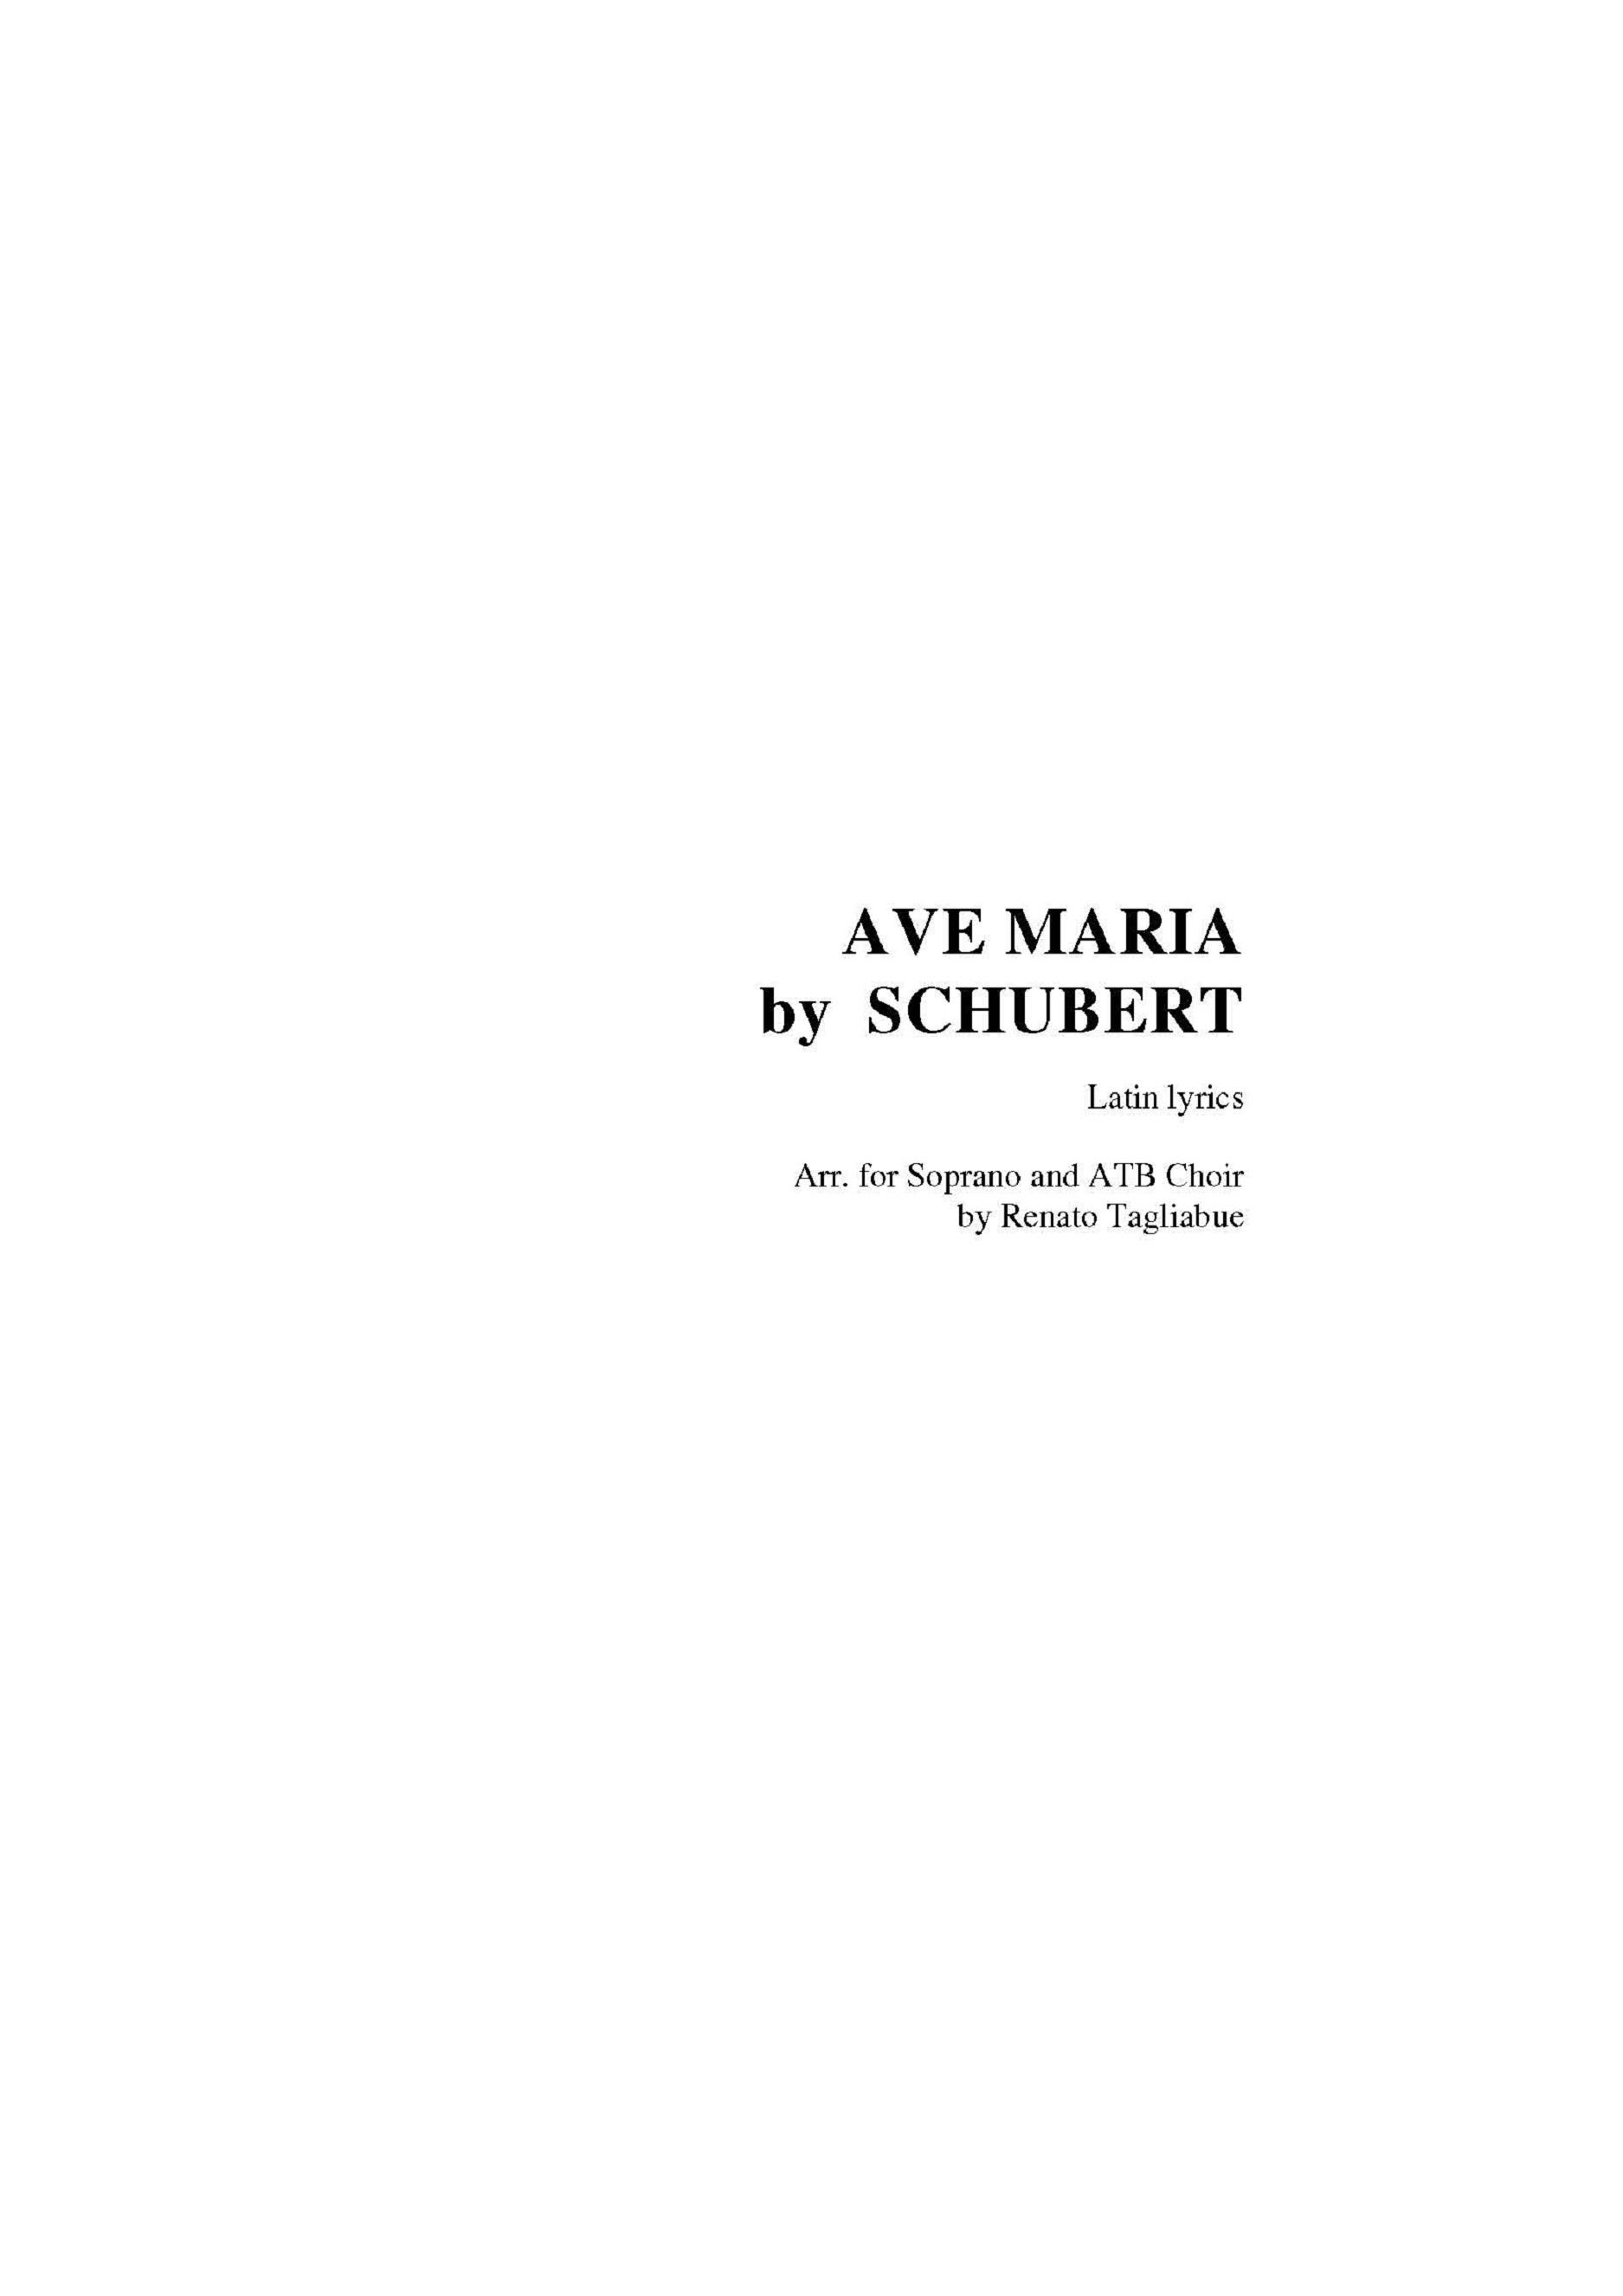 AVE MARIA by SCHUBERT - Arr. for Soprano (or Tenor), ATB Choir and Piano - Latin Lyrics